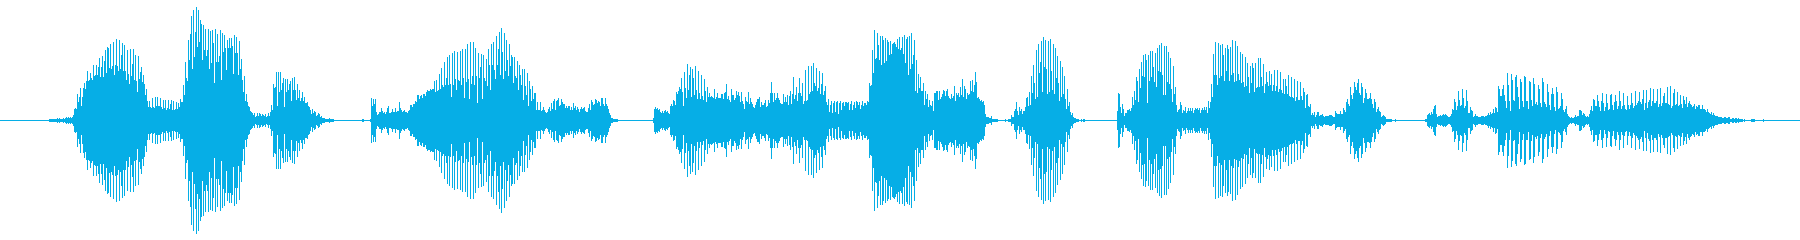 Can you talk to me too casually?'s reproduced waveform